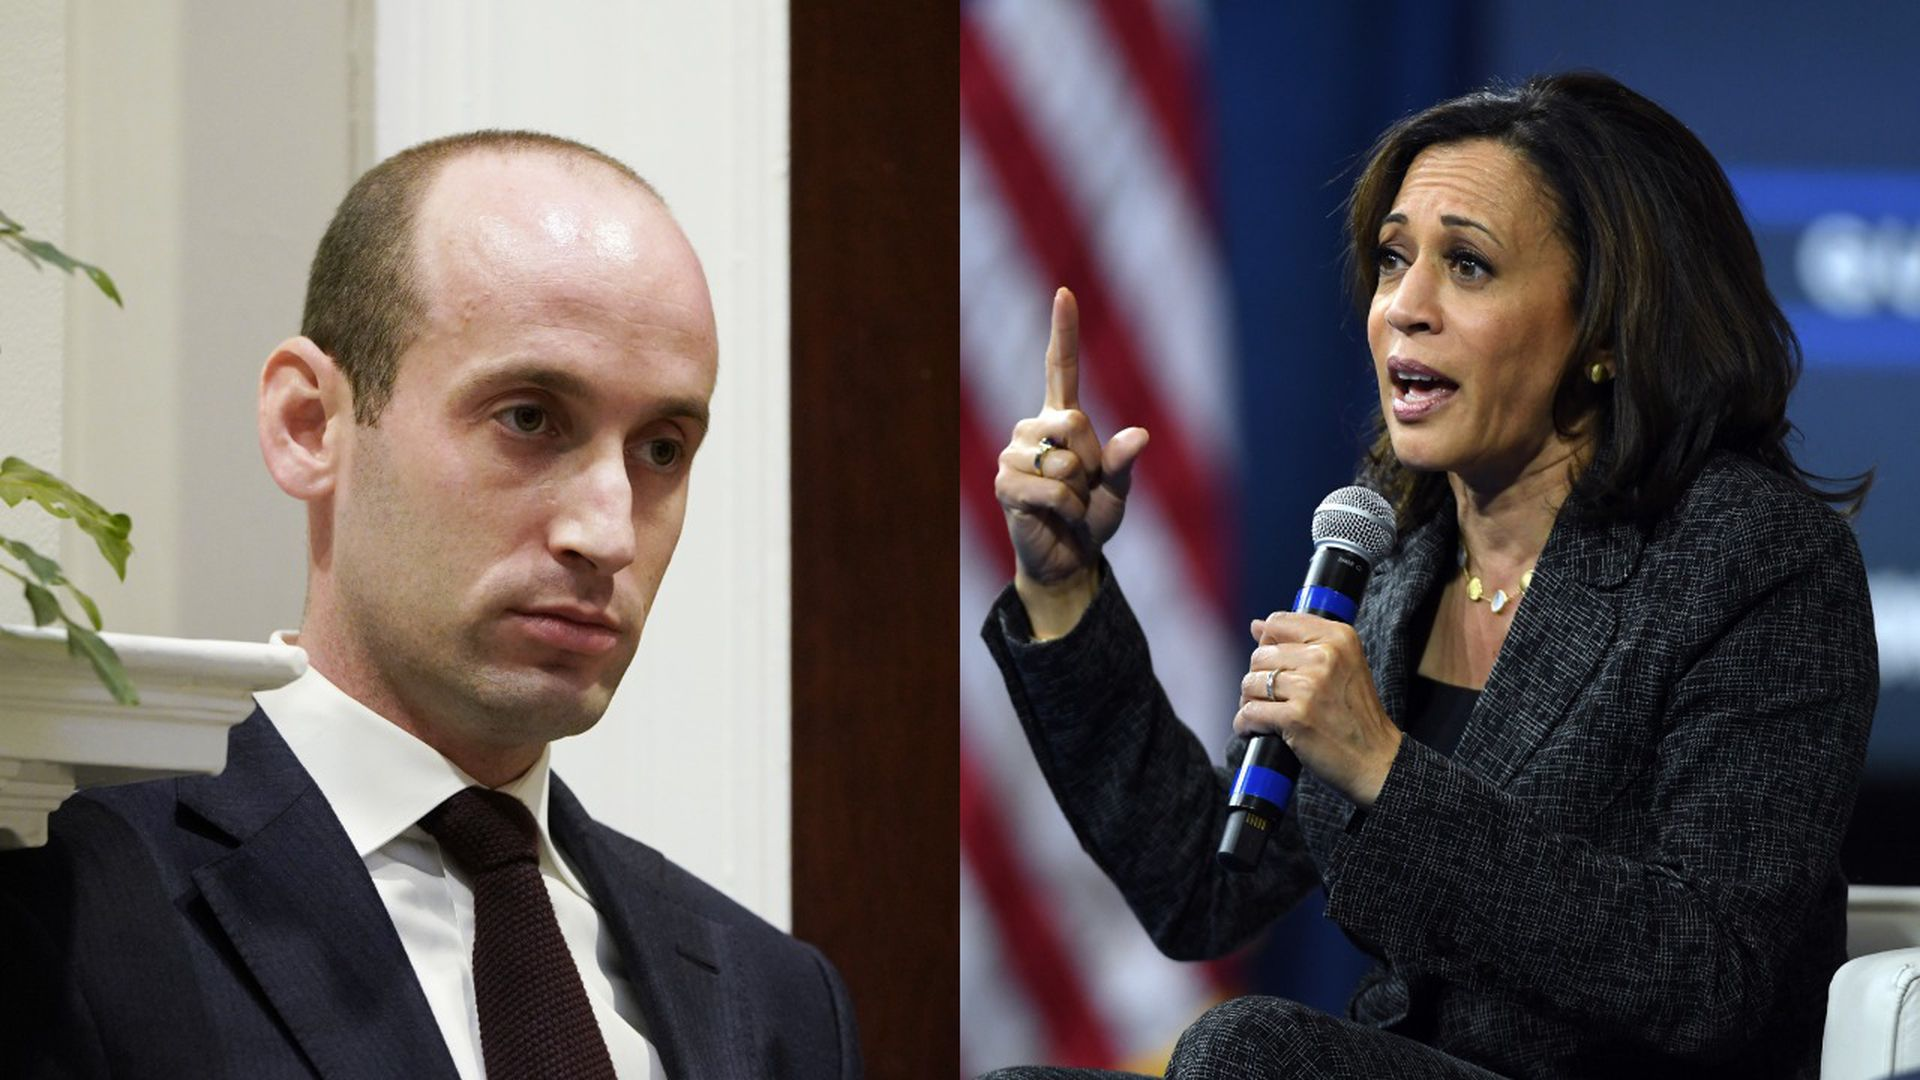 Stephen Miller and Kamala Harris